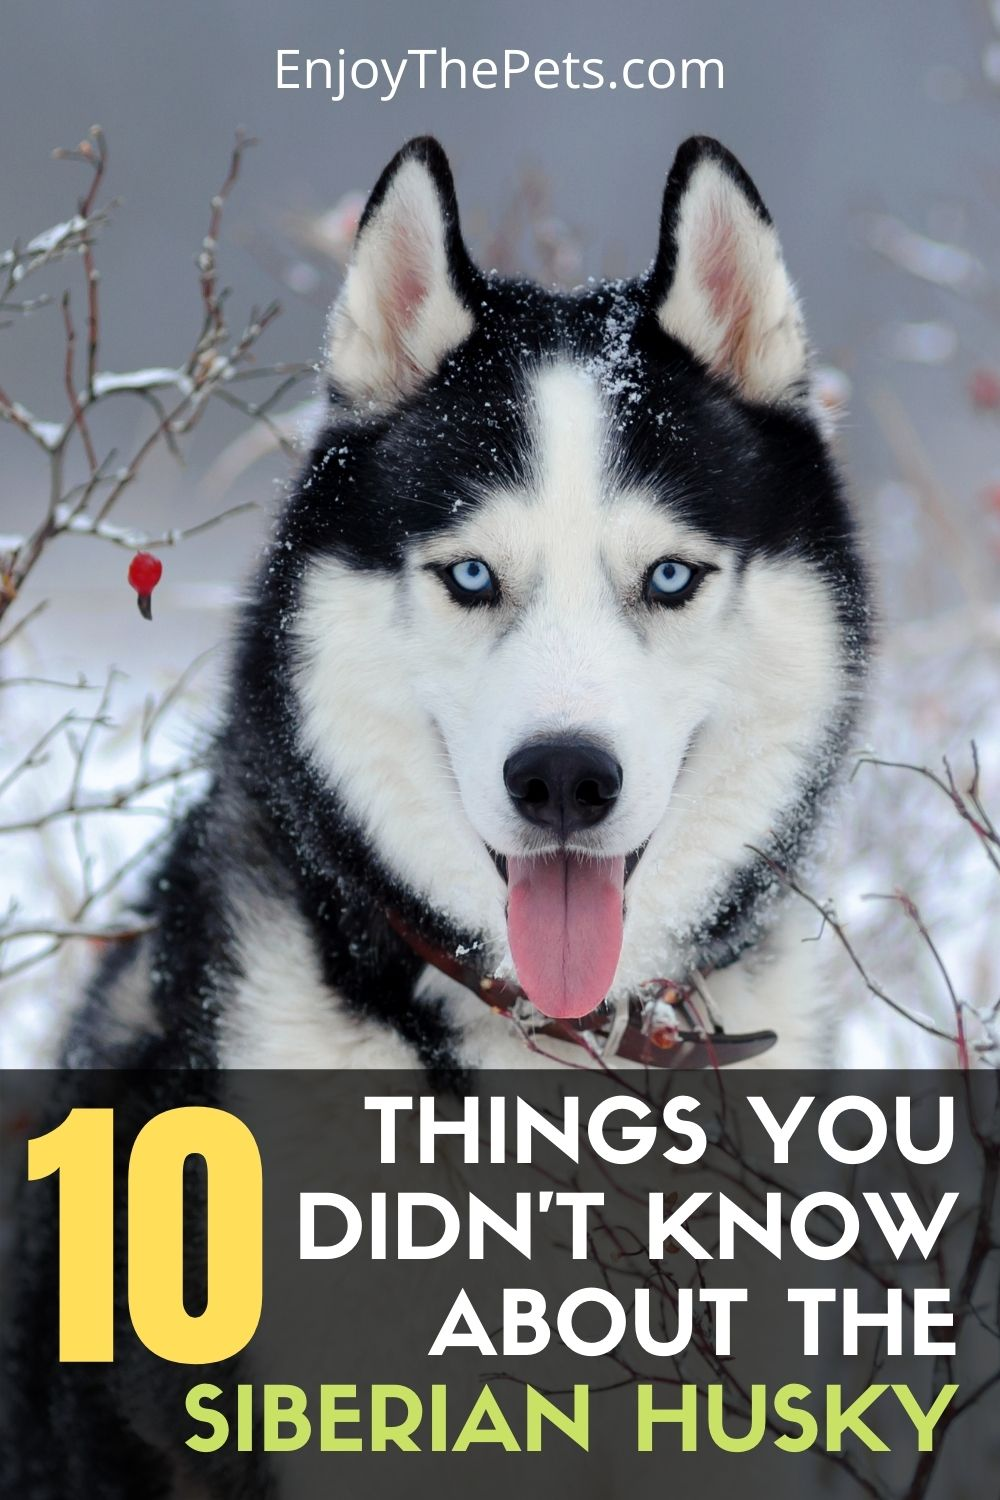 10 Things You Didnt Know About the Siberian Husky